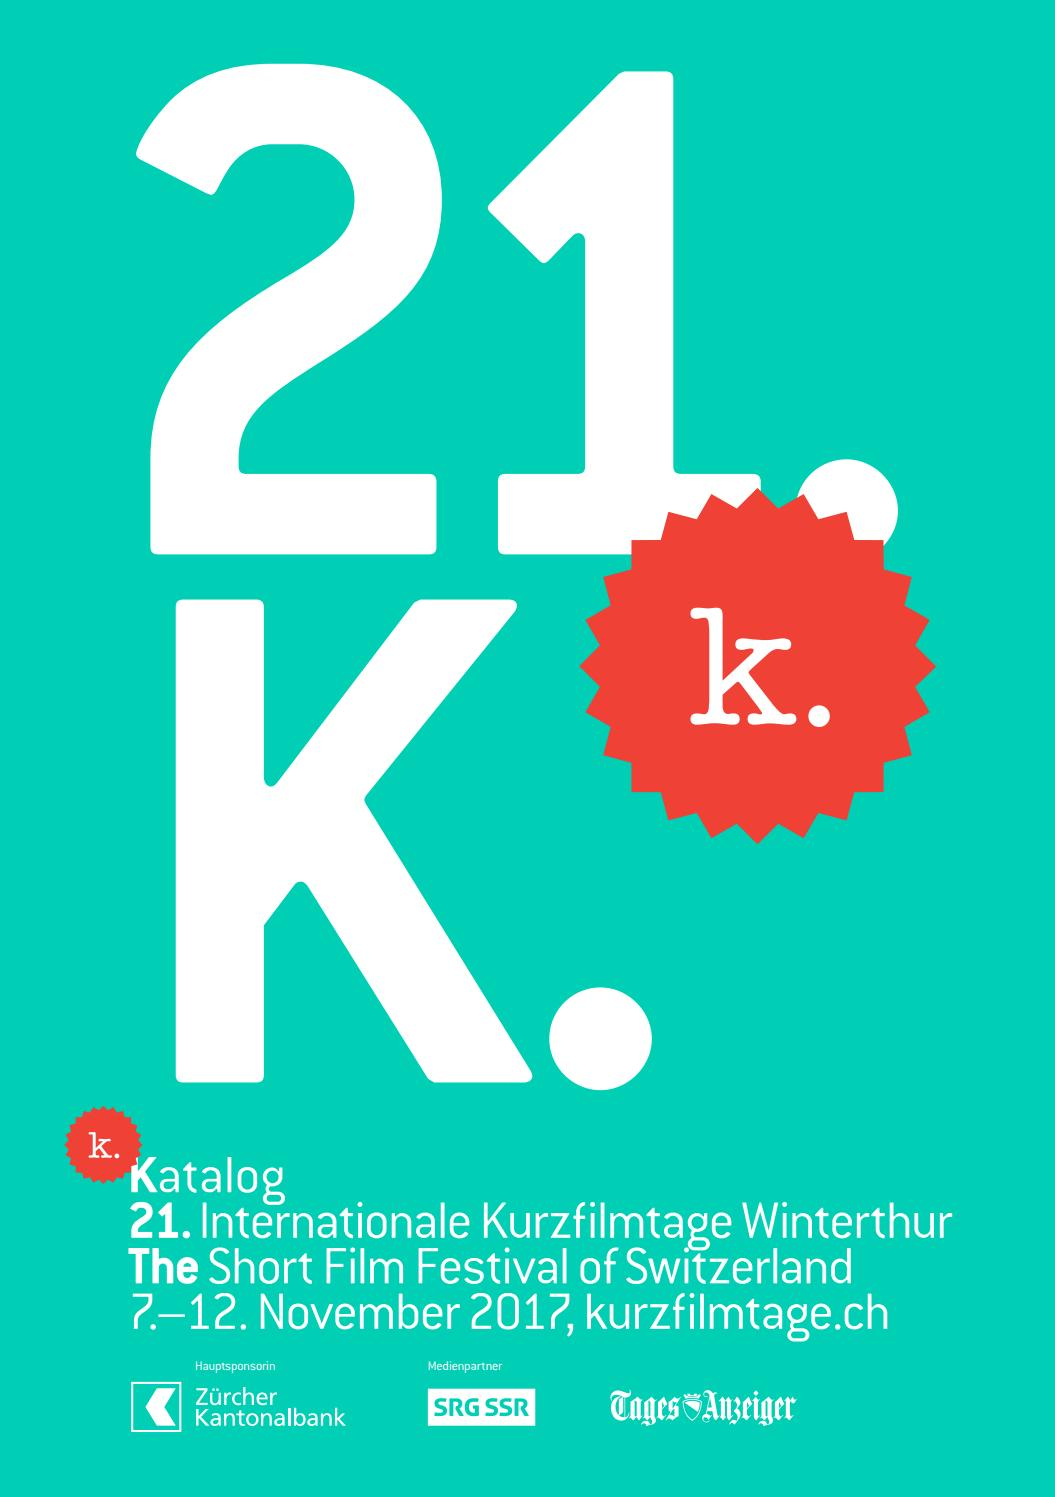 Deko Discount 24 Katalog 21 Internationale Kurzfilmtage Winterthur By Int